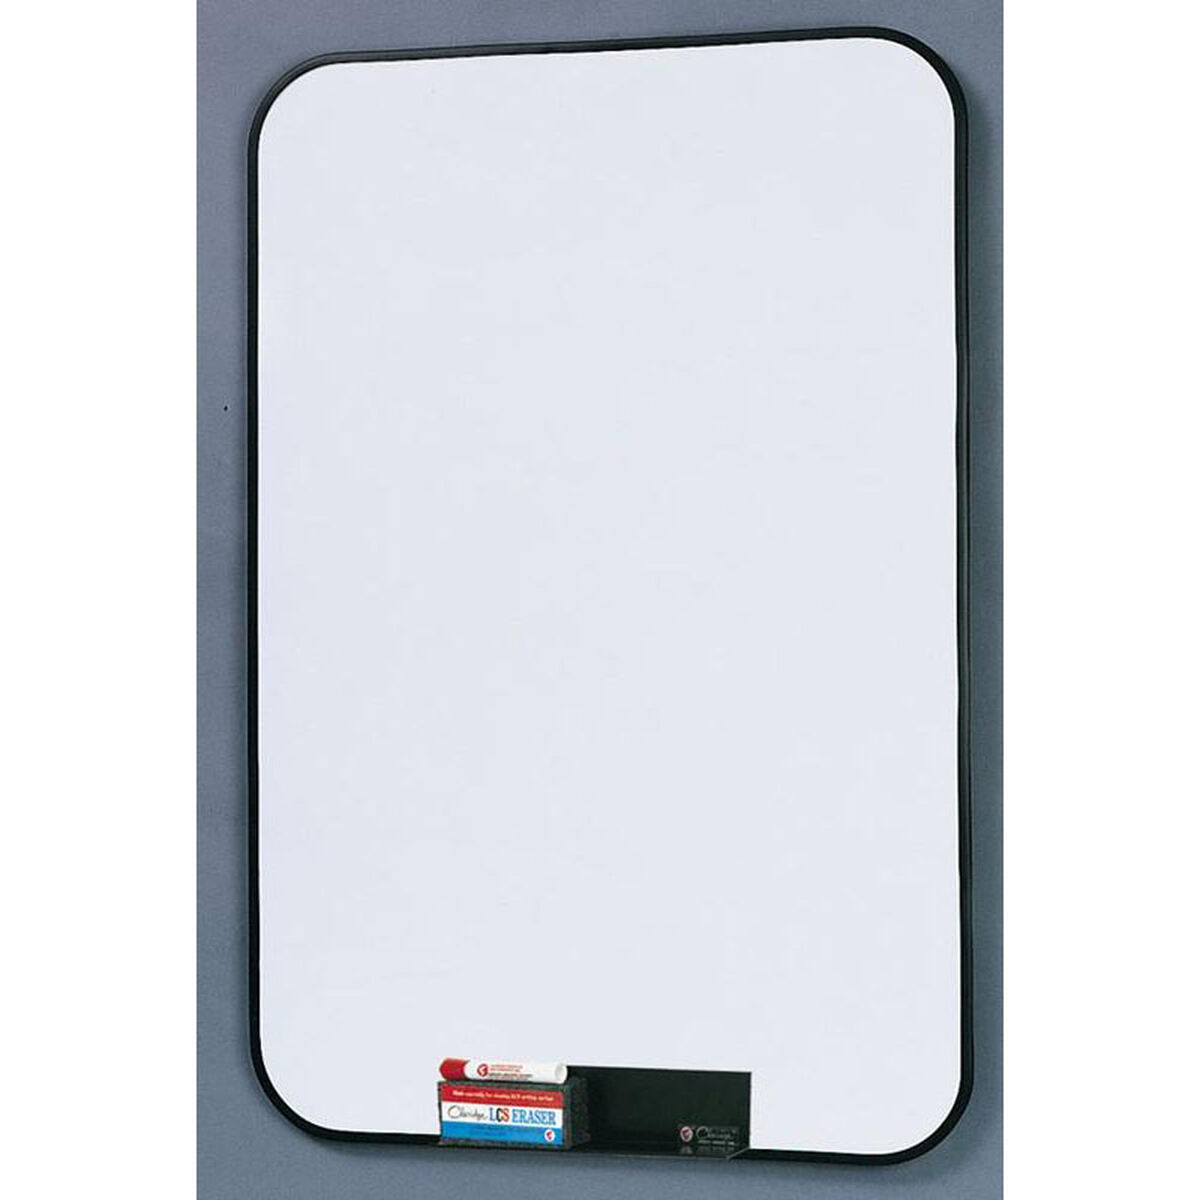 2800 Series White Porcelain Markerboard With Black Vinyl